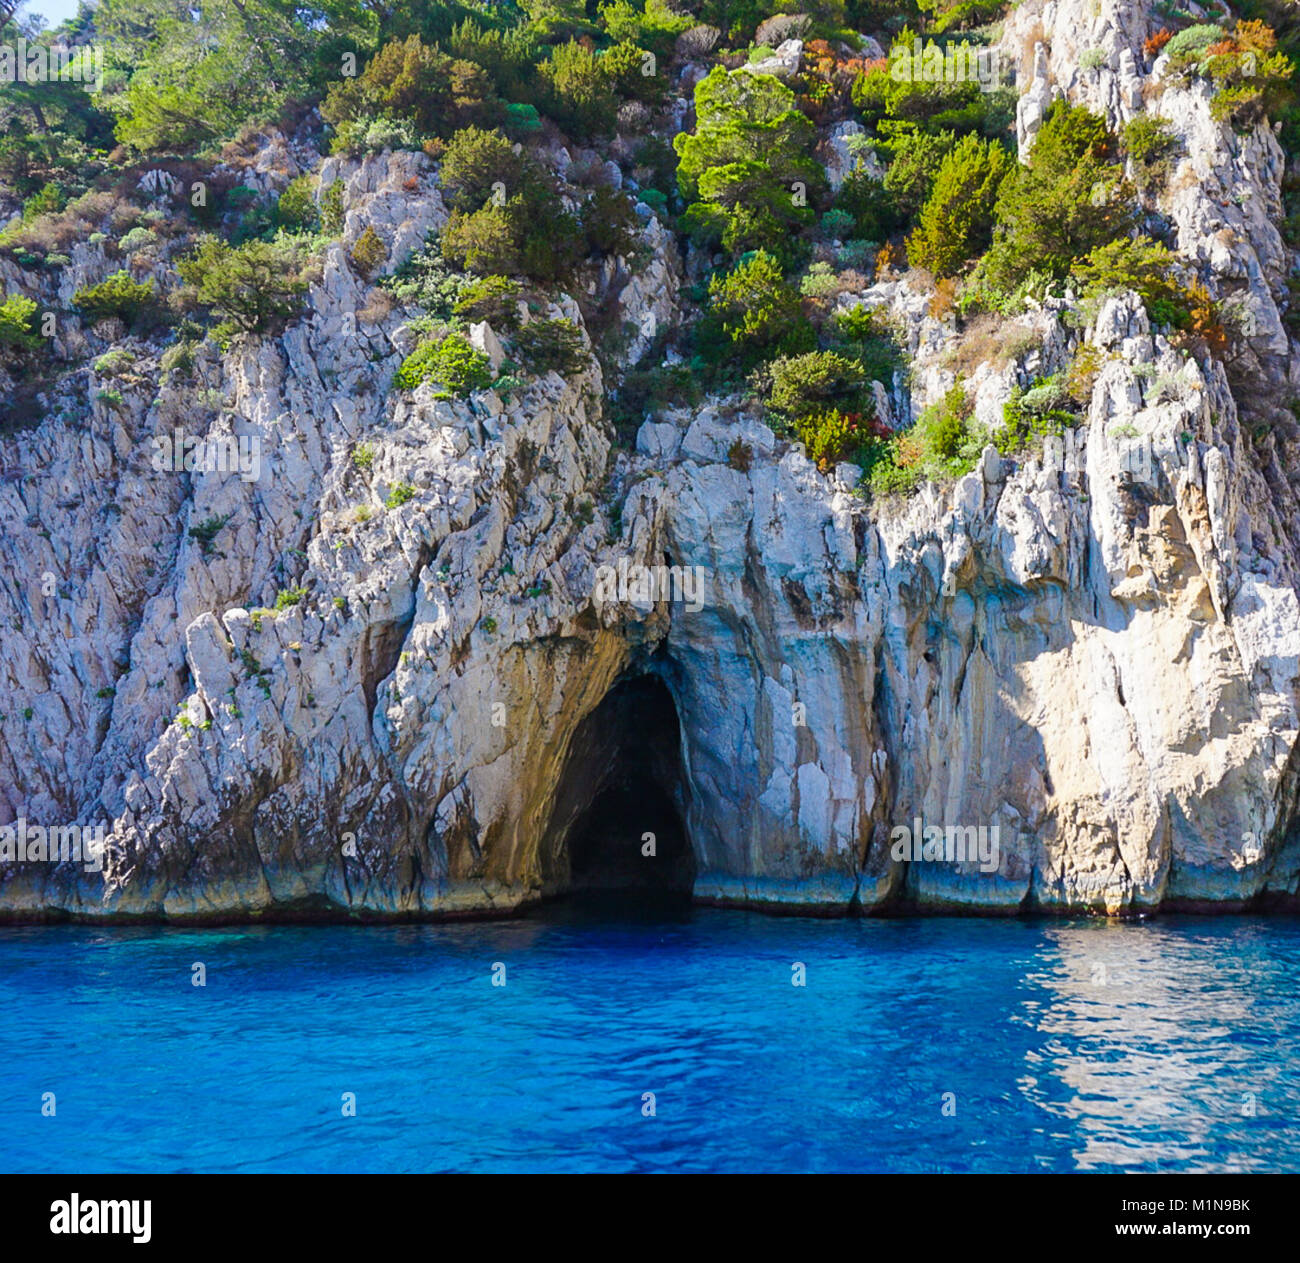 The Entrance to the Coral Grotto on the island of Capri, Italy Stock Photo